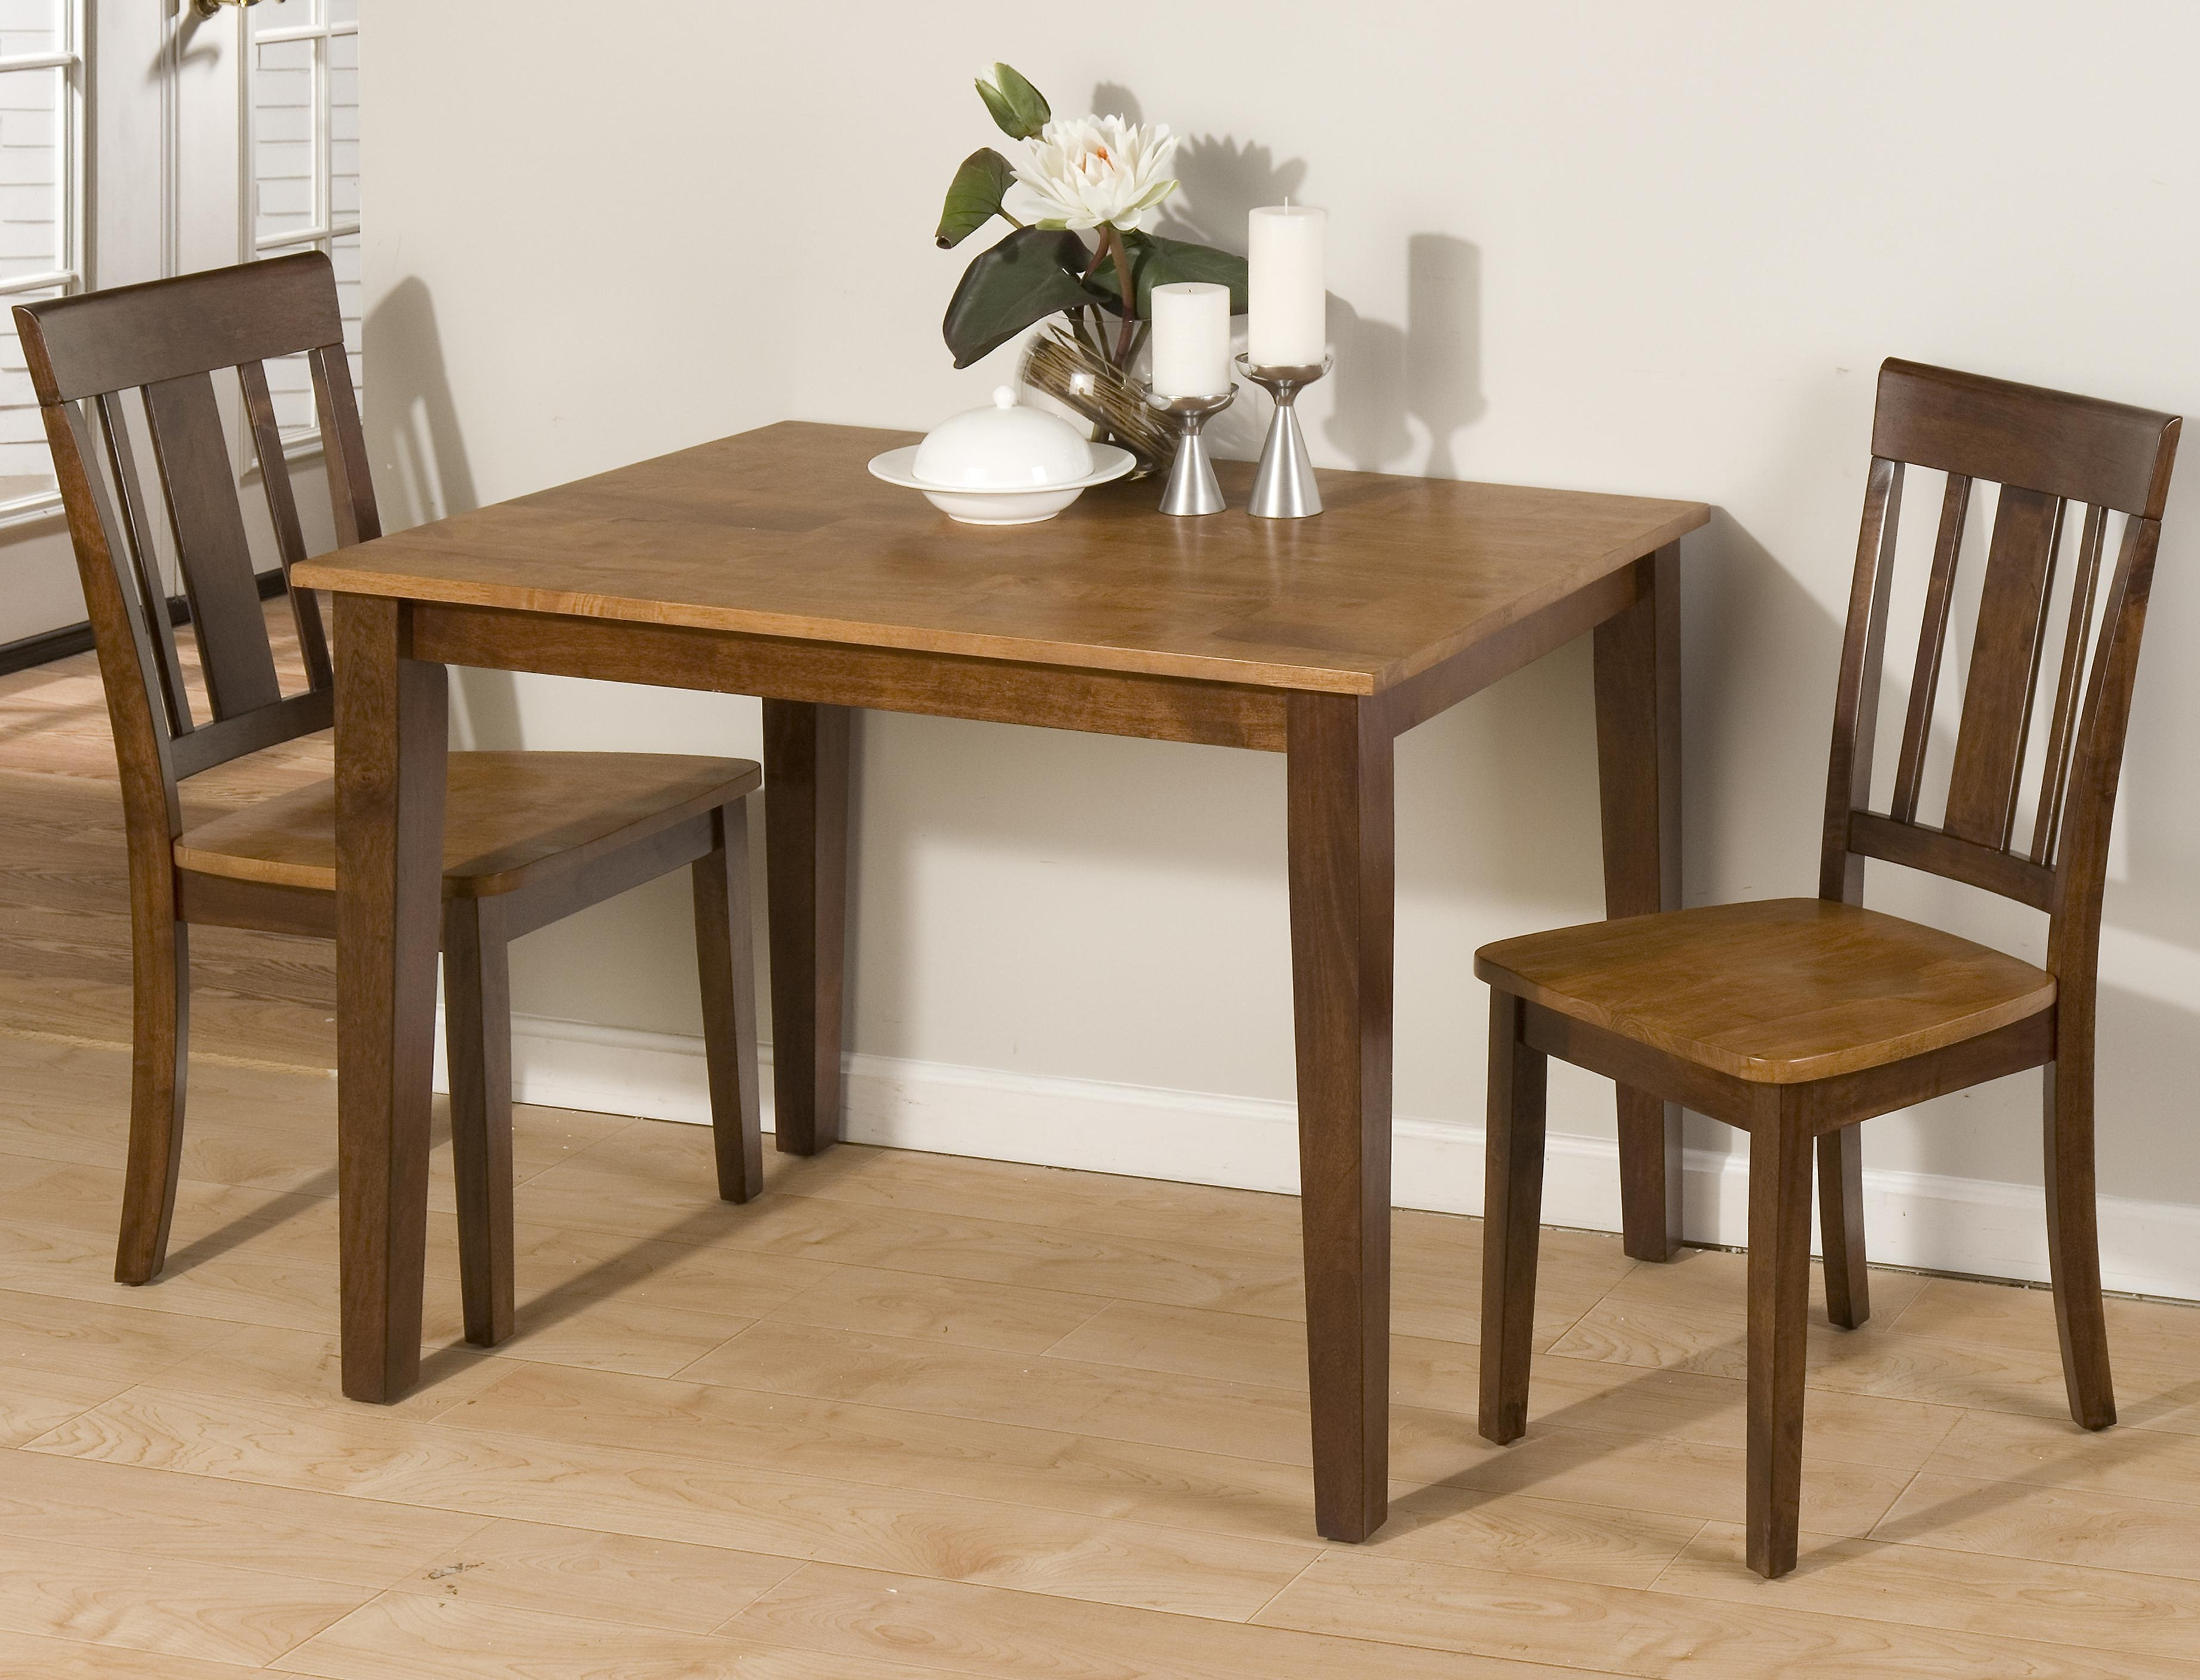 Well Known Lindy Espresso Rectangle Dining Tables Intended For Jofran Kura Espresso And Canyon Gold Two Tone Solid Rubberwood (View 23 of 25)